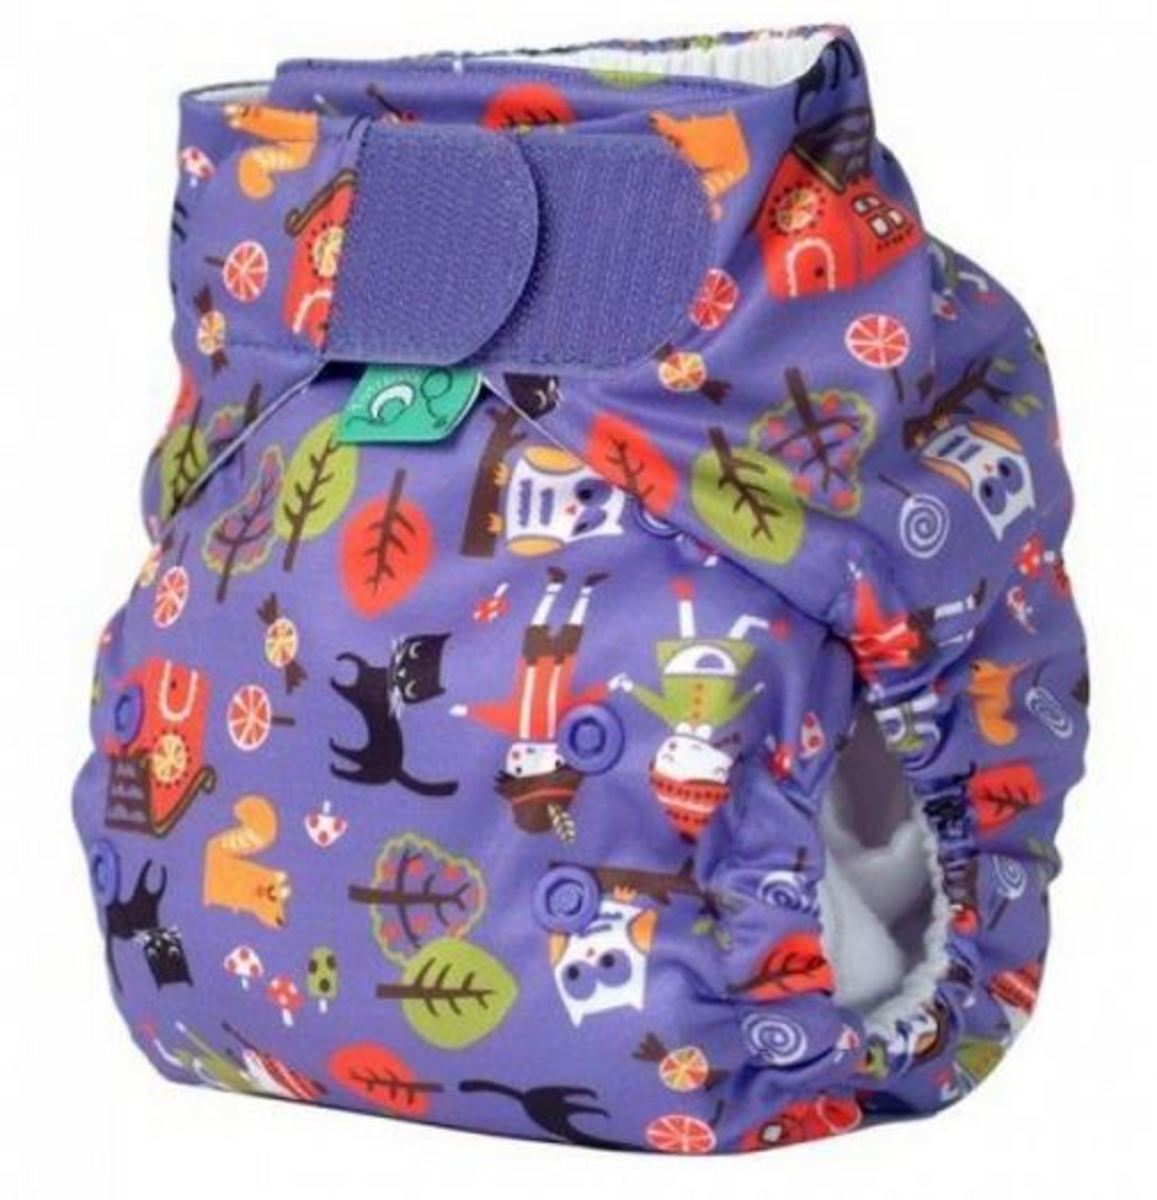 Tots Bots Hansel and Gretel Print Diaper